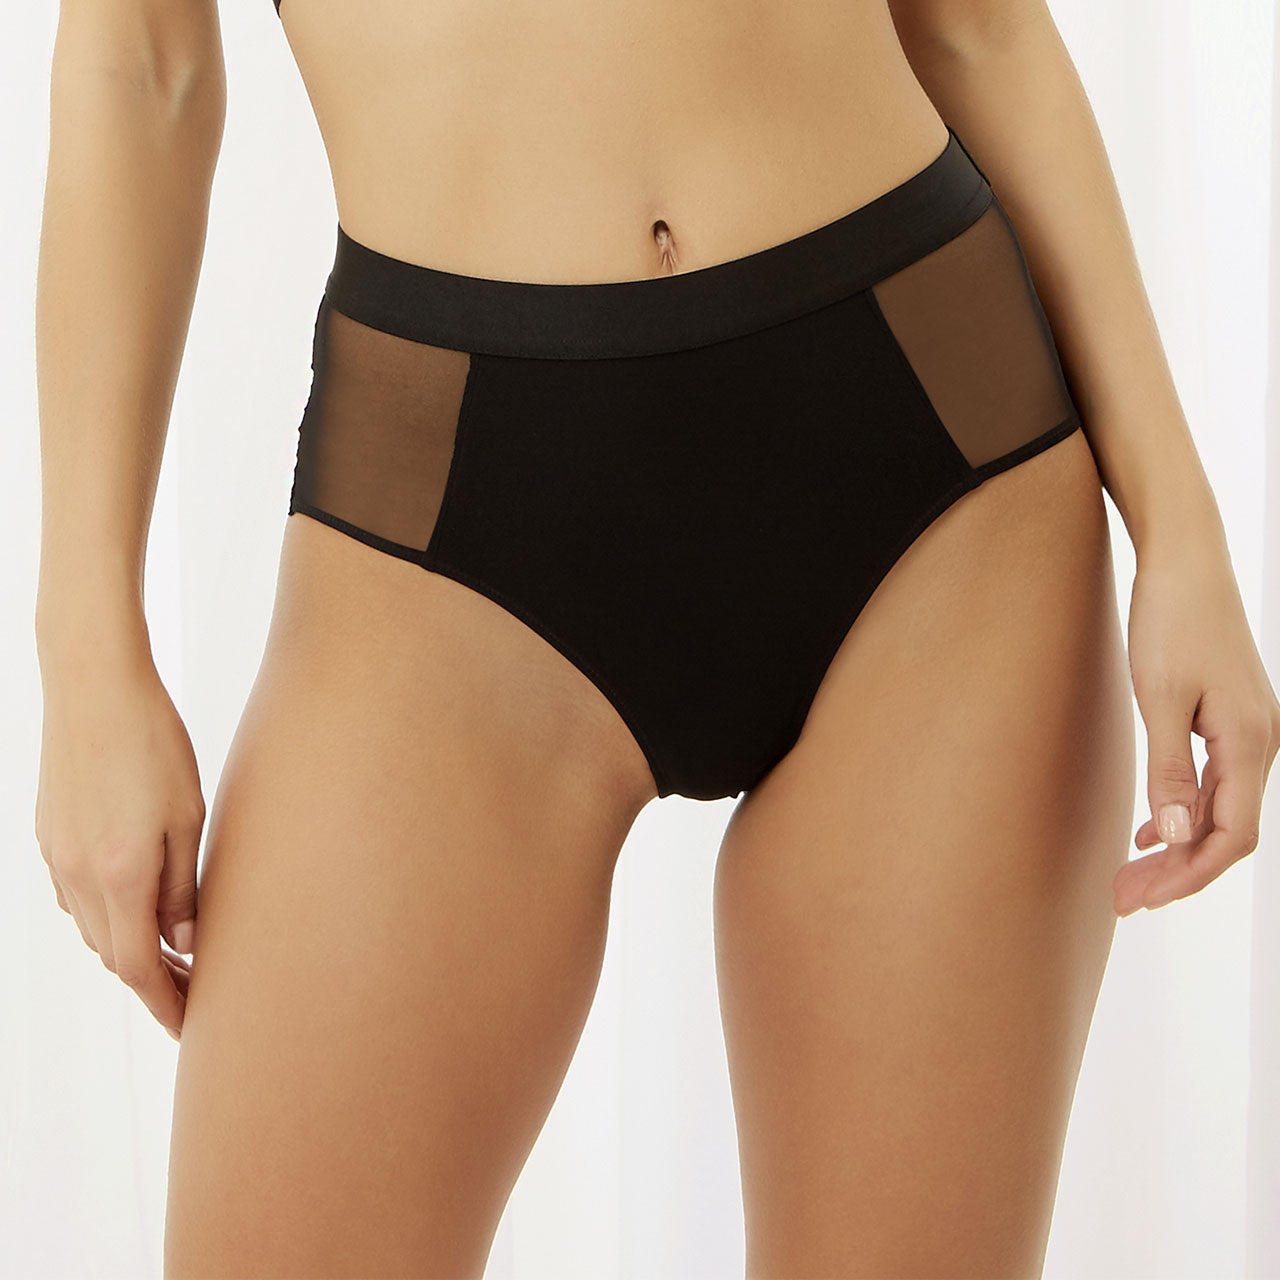 On trend high waisted mesh brief with provocative lace up detail on the back. Softly elasticated legline and a wide elastic waistline give a perfect fit and feel. Style with the matching Fenella bra for an edge on trend statement look.